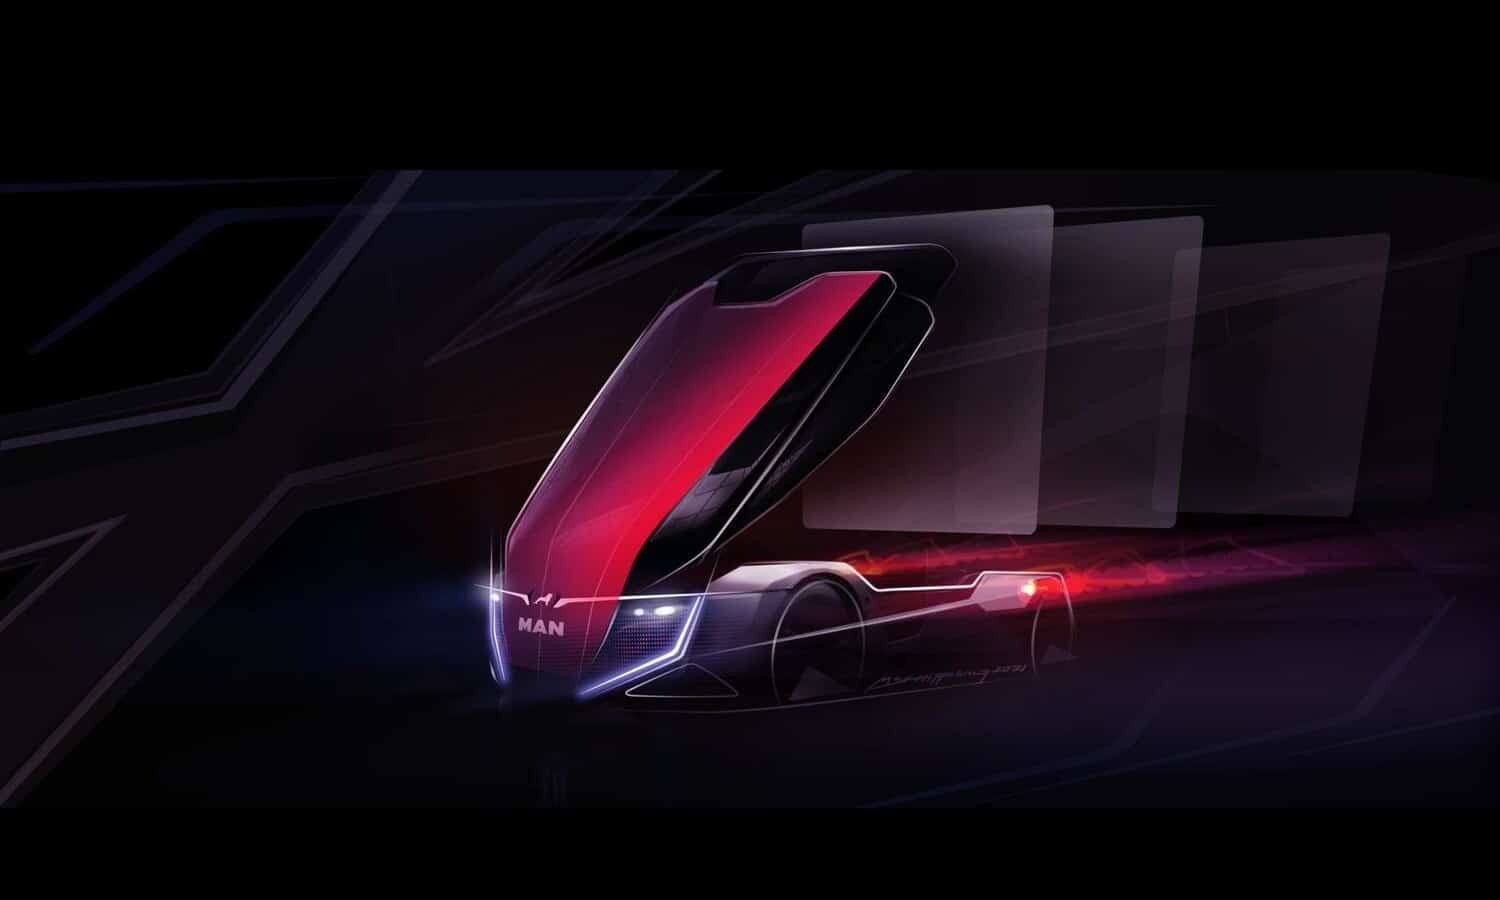 teaser image of the Project Trinity EV